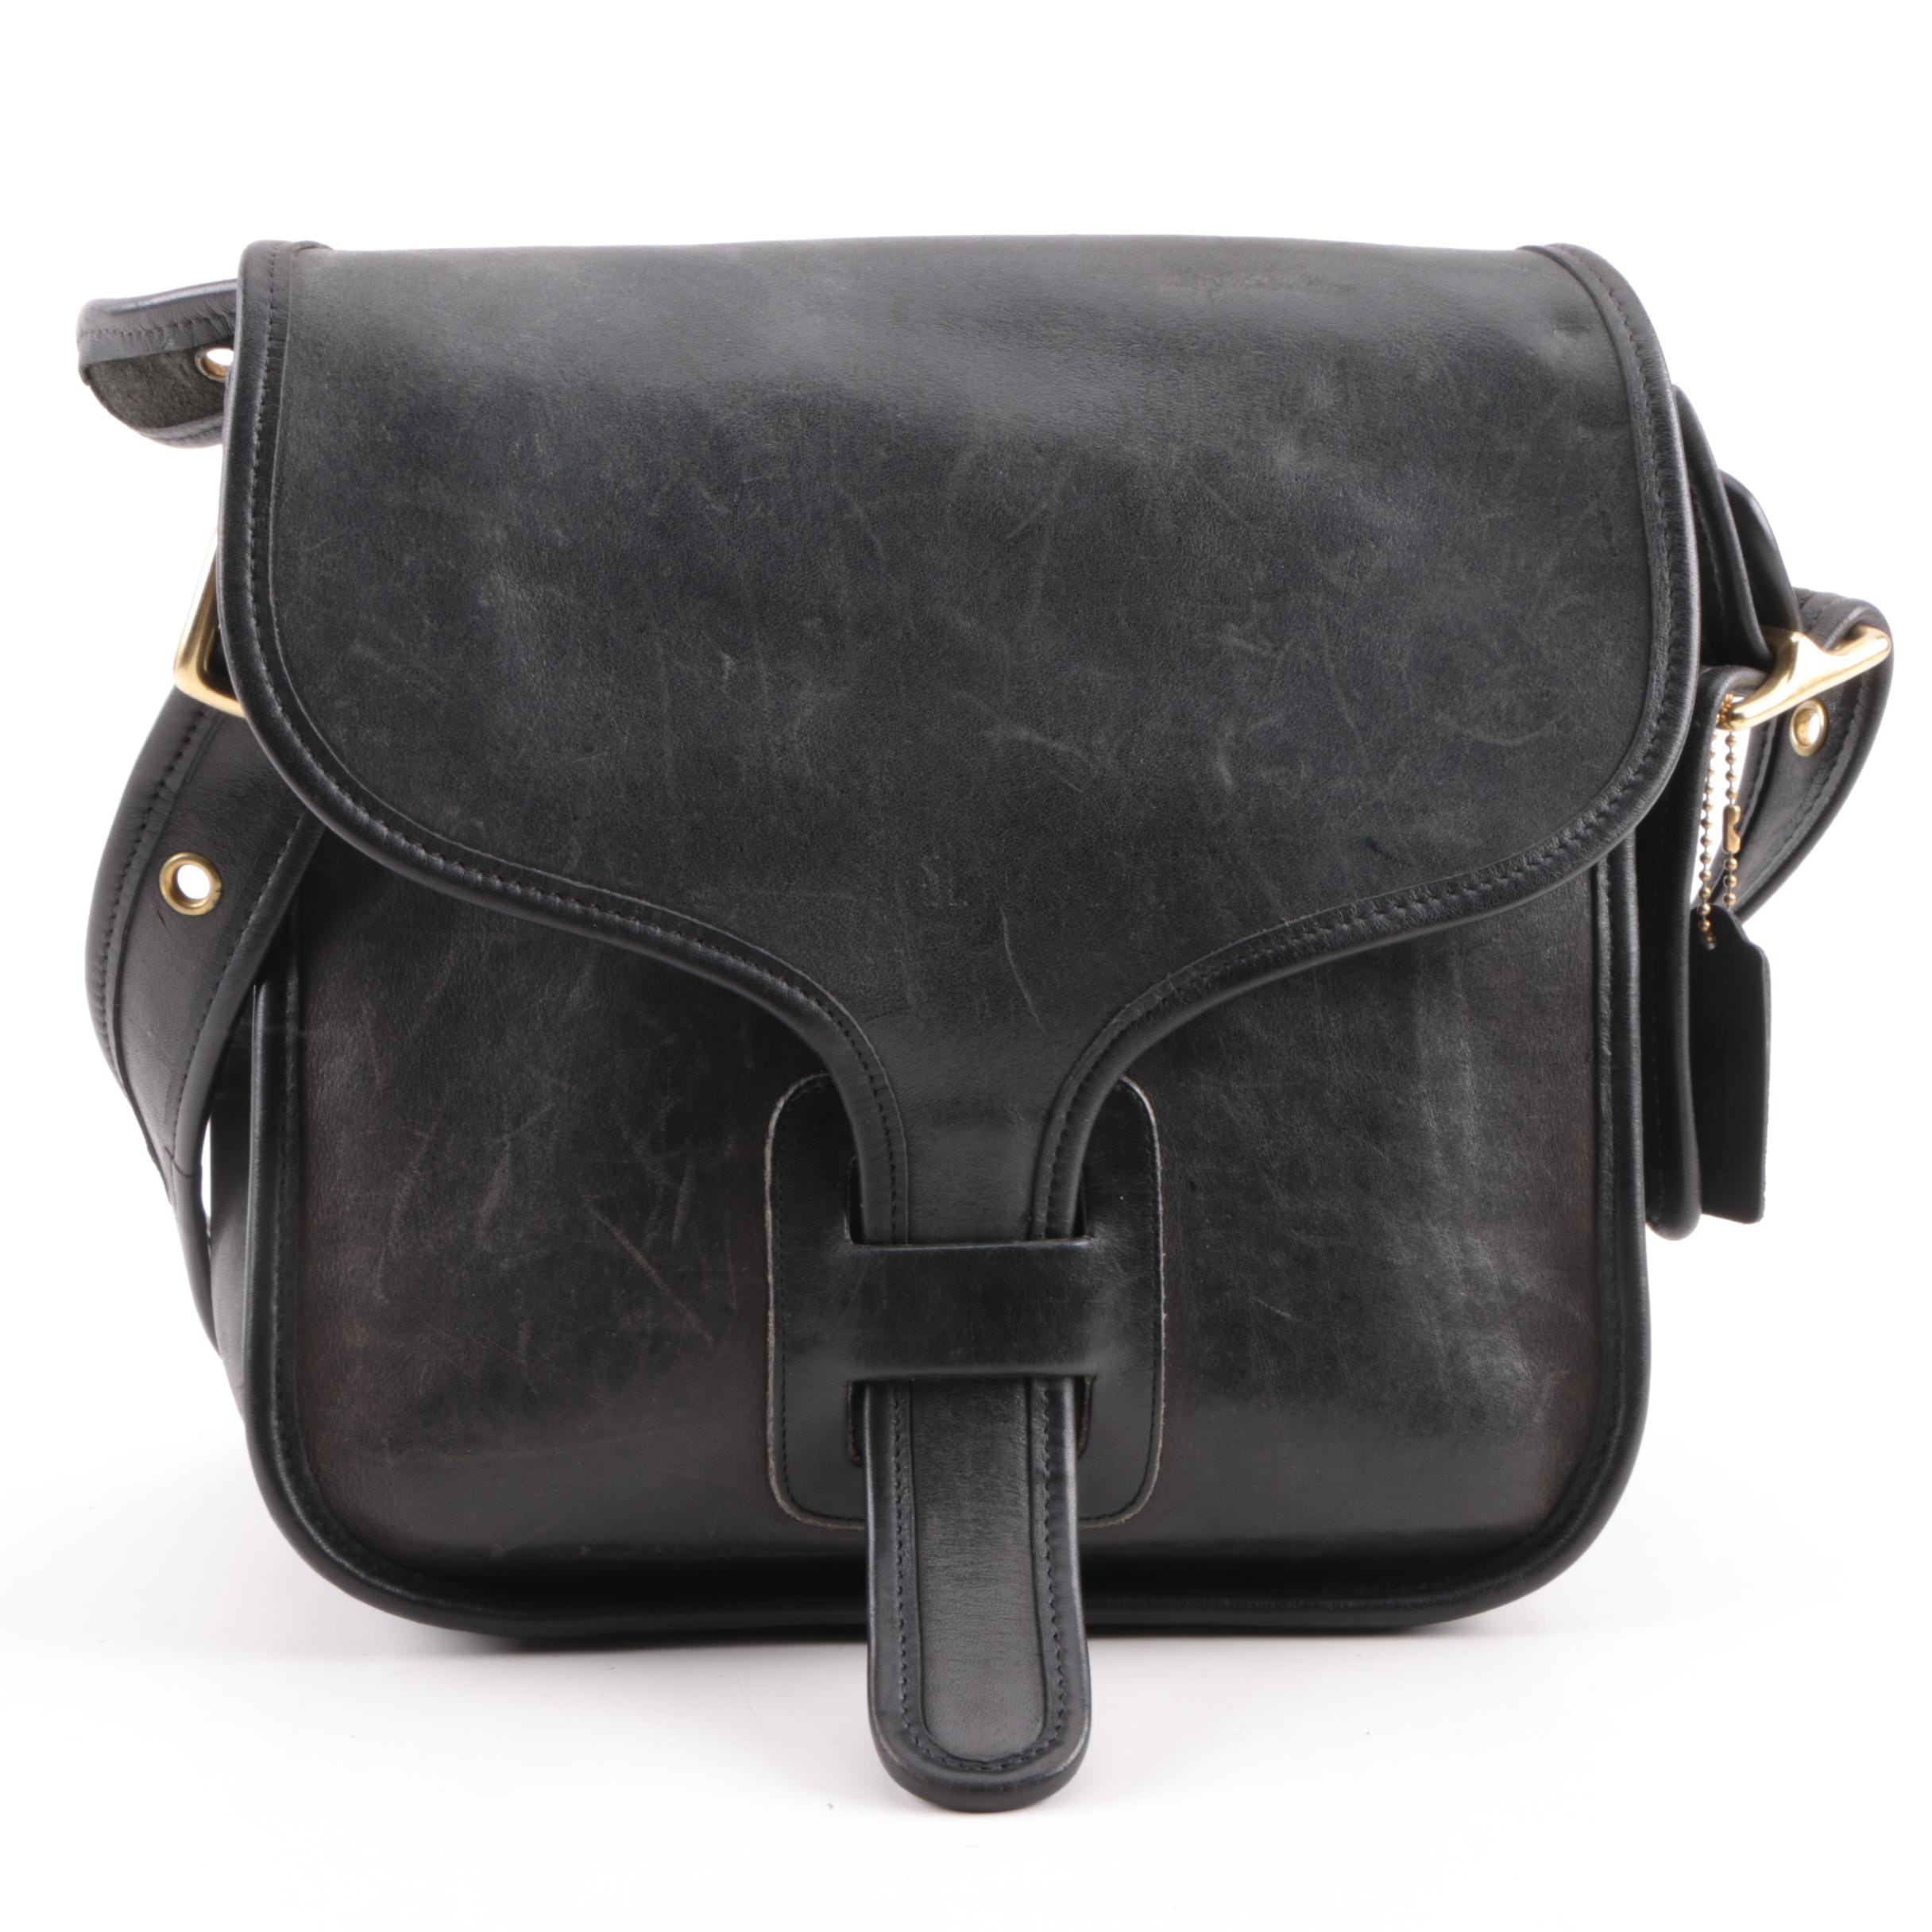 Circa 1970s Coach Rodarte Courier Black Leather Bag